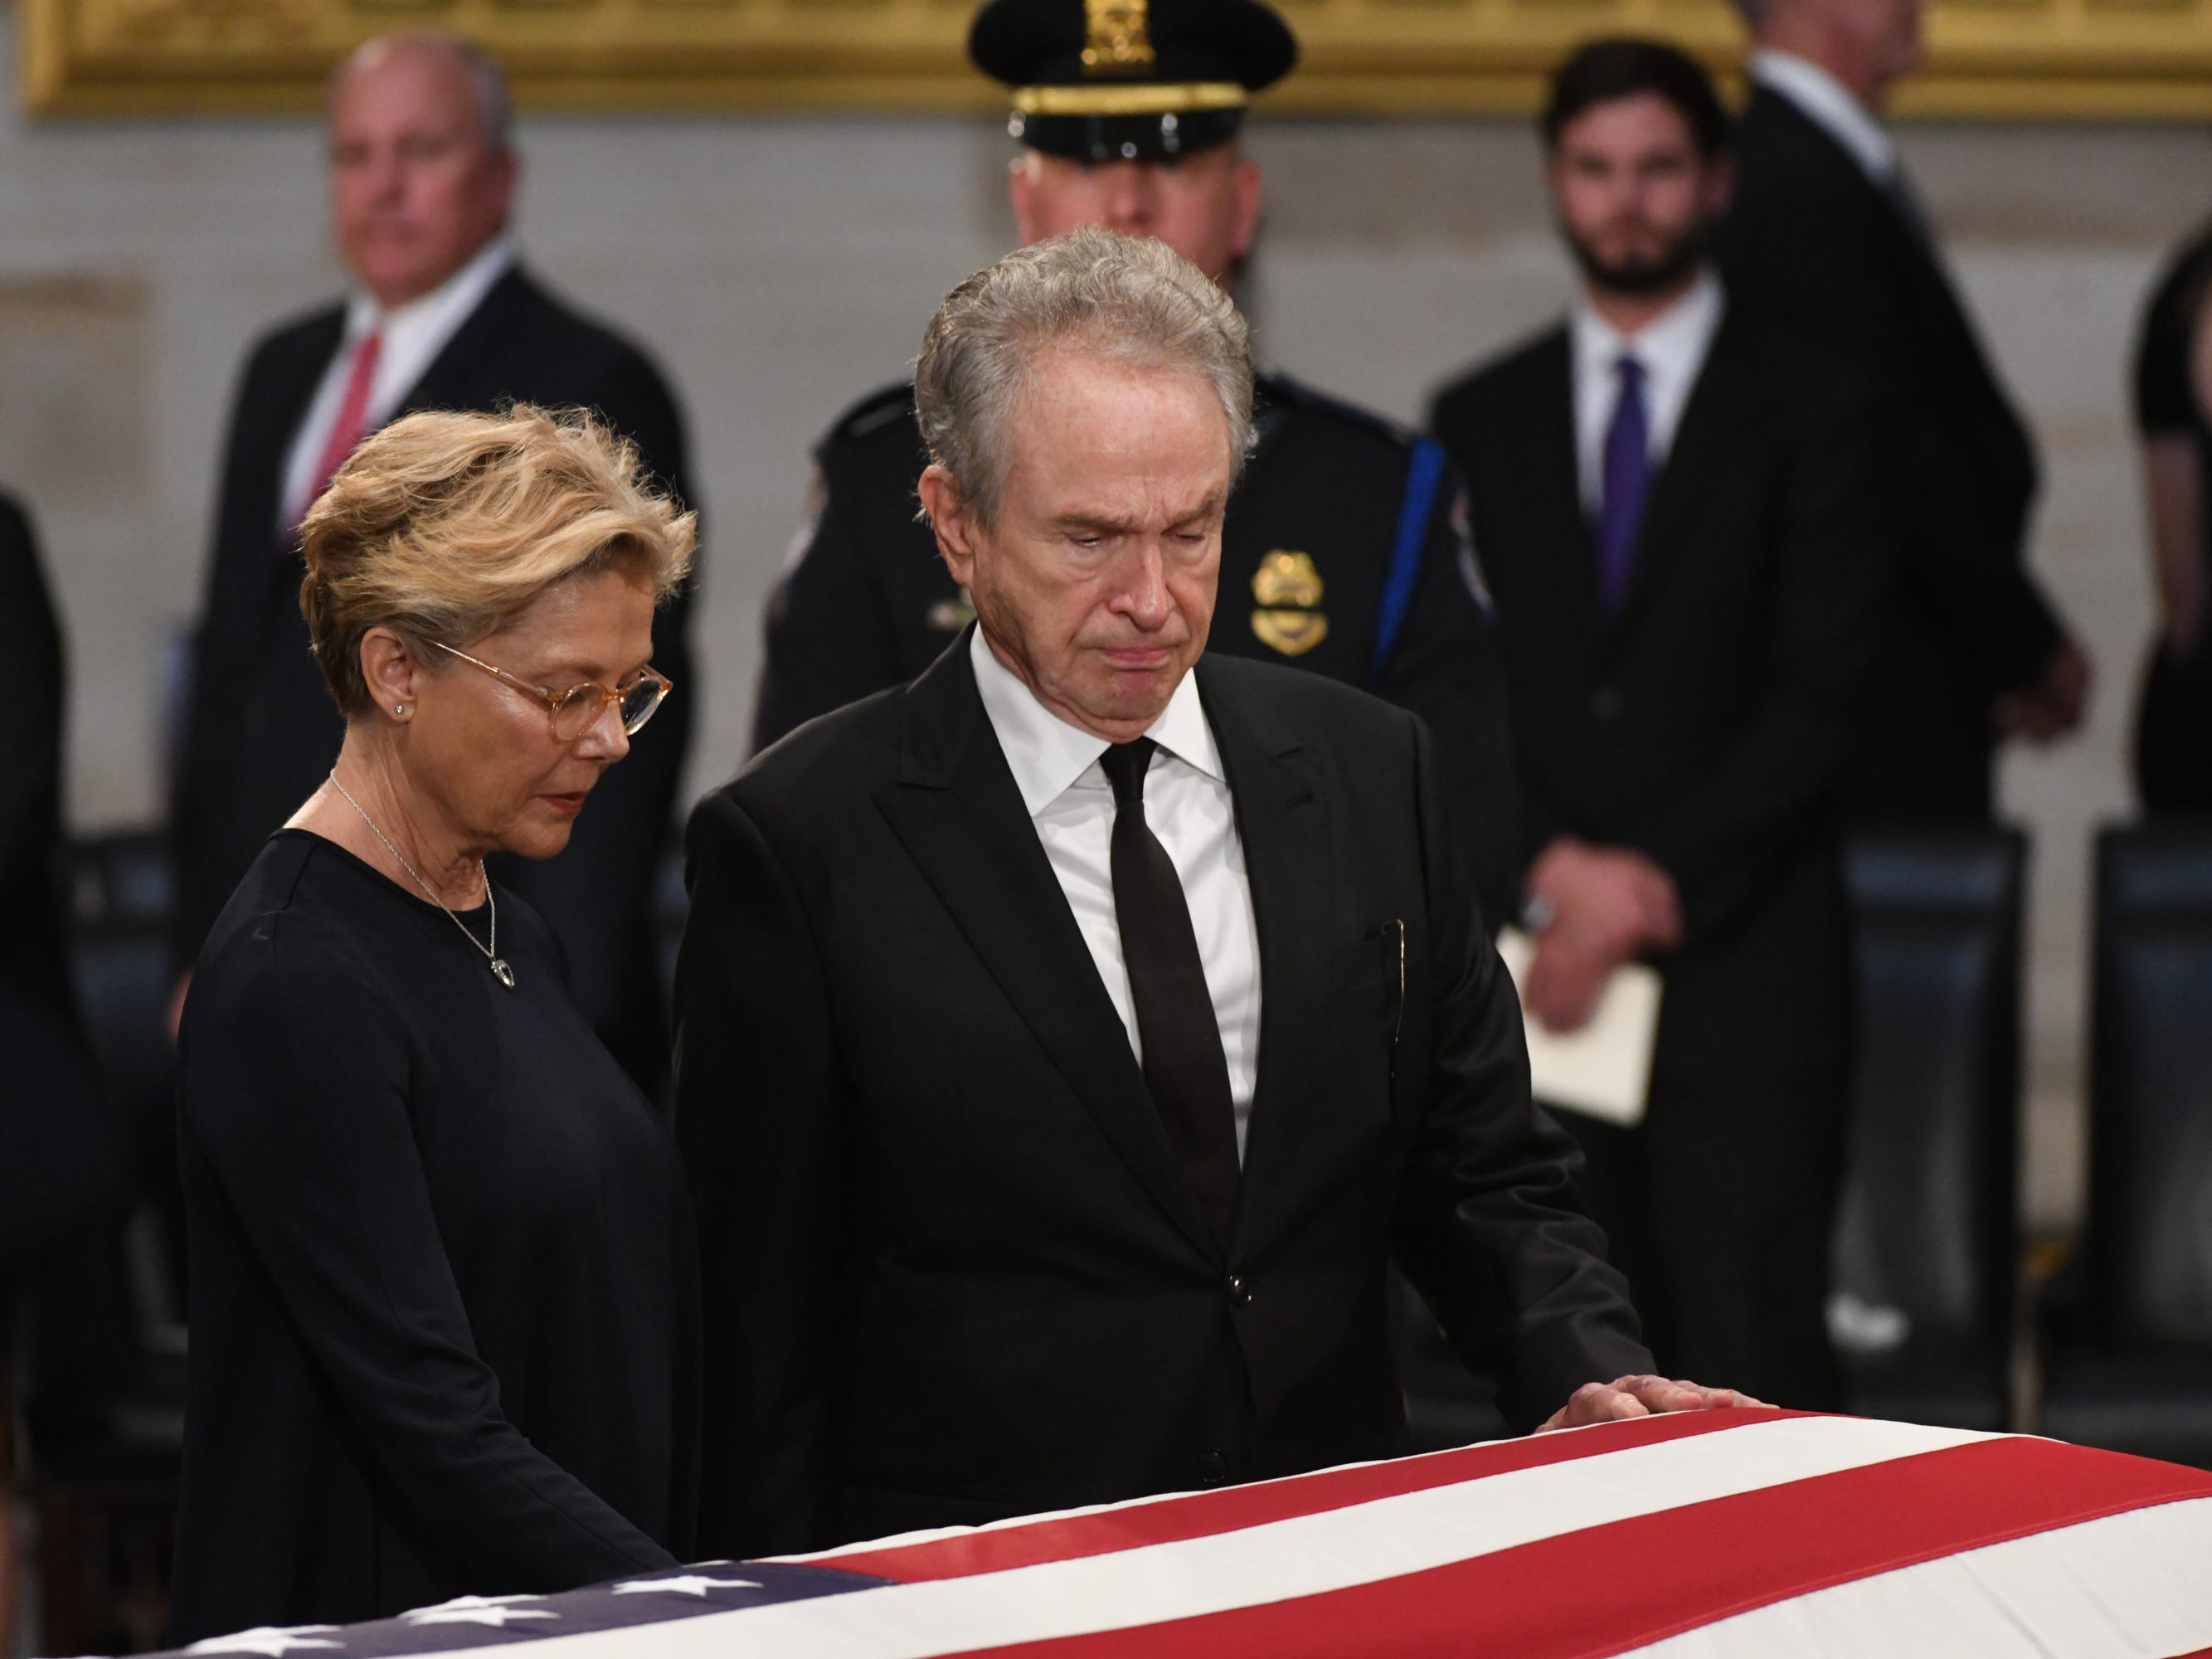 8/31/18 11:33:19 AM -- Washington, DC, U.S.A  -- Warren Beatty and Annette Bening  pays their respects as the body of John McCain lies in state at the U.S. Capitol in Washington on Aug. 31, 2018 in Washington. Sen. McCain died on Aug. 25. --    Photo by Jasper Colt, USA TODAY Staff ORG XMIT:  JC 137436 McCain U.S. Capi 8/31/2018 (Via OlyDrop)